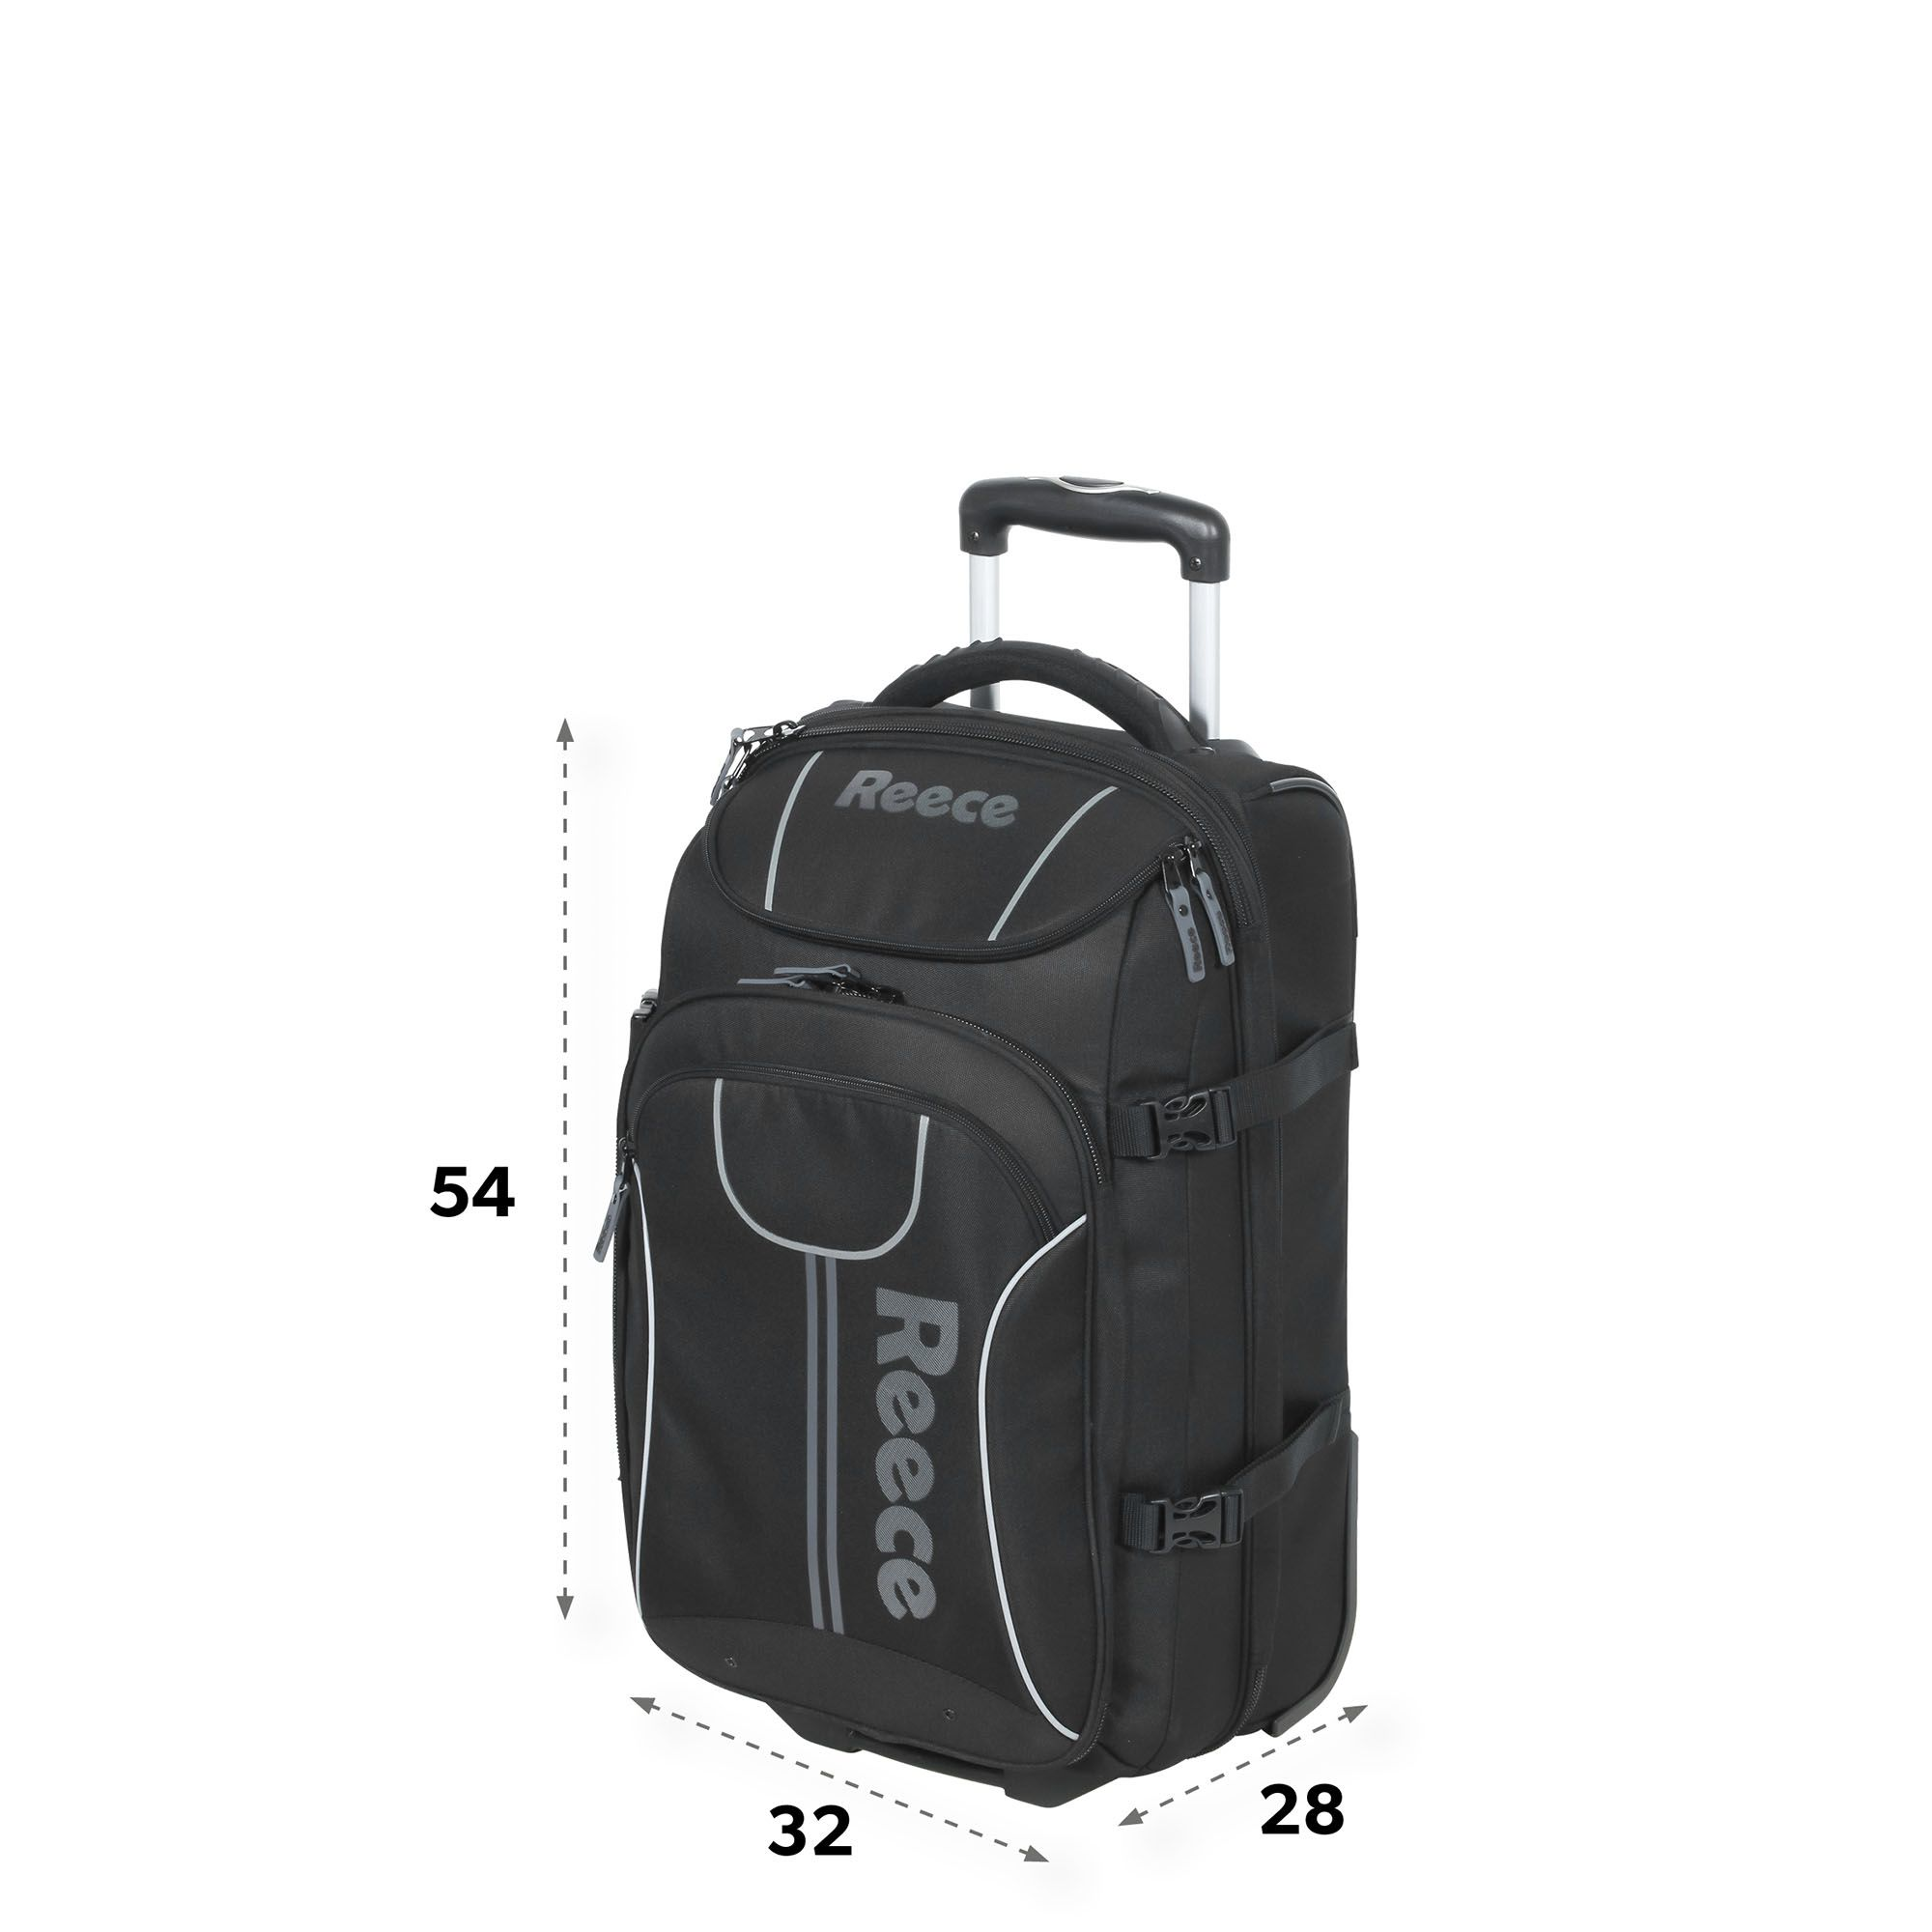 Reece Trolley Tasche Groß Hockeydirekt Trolley Bag Medium 885805 8000 No Sz Zwart Reeceaustralia